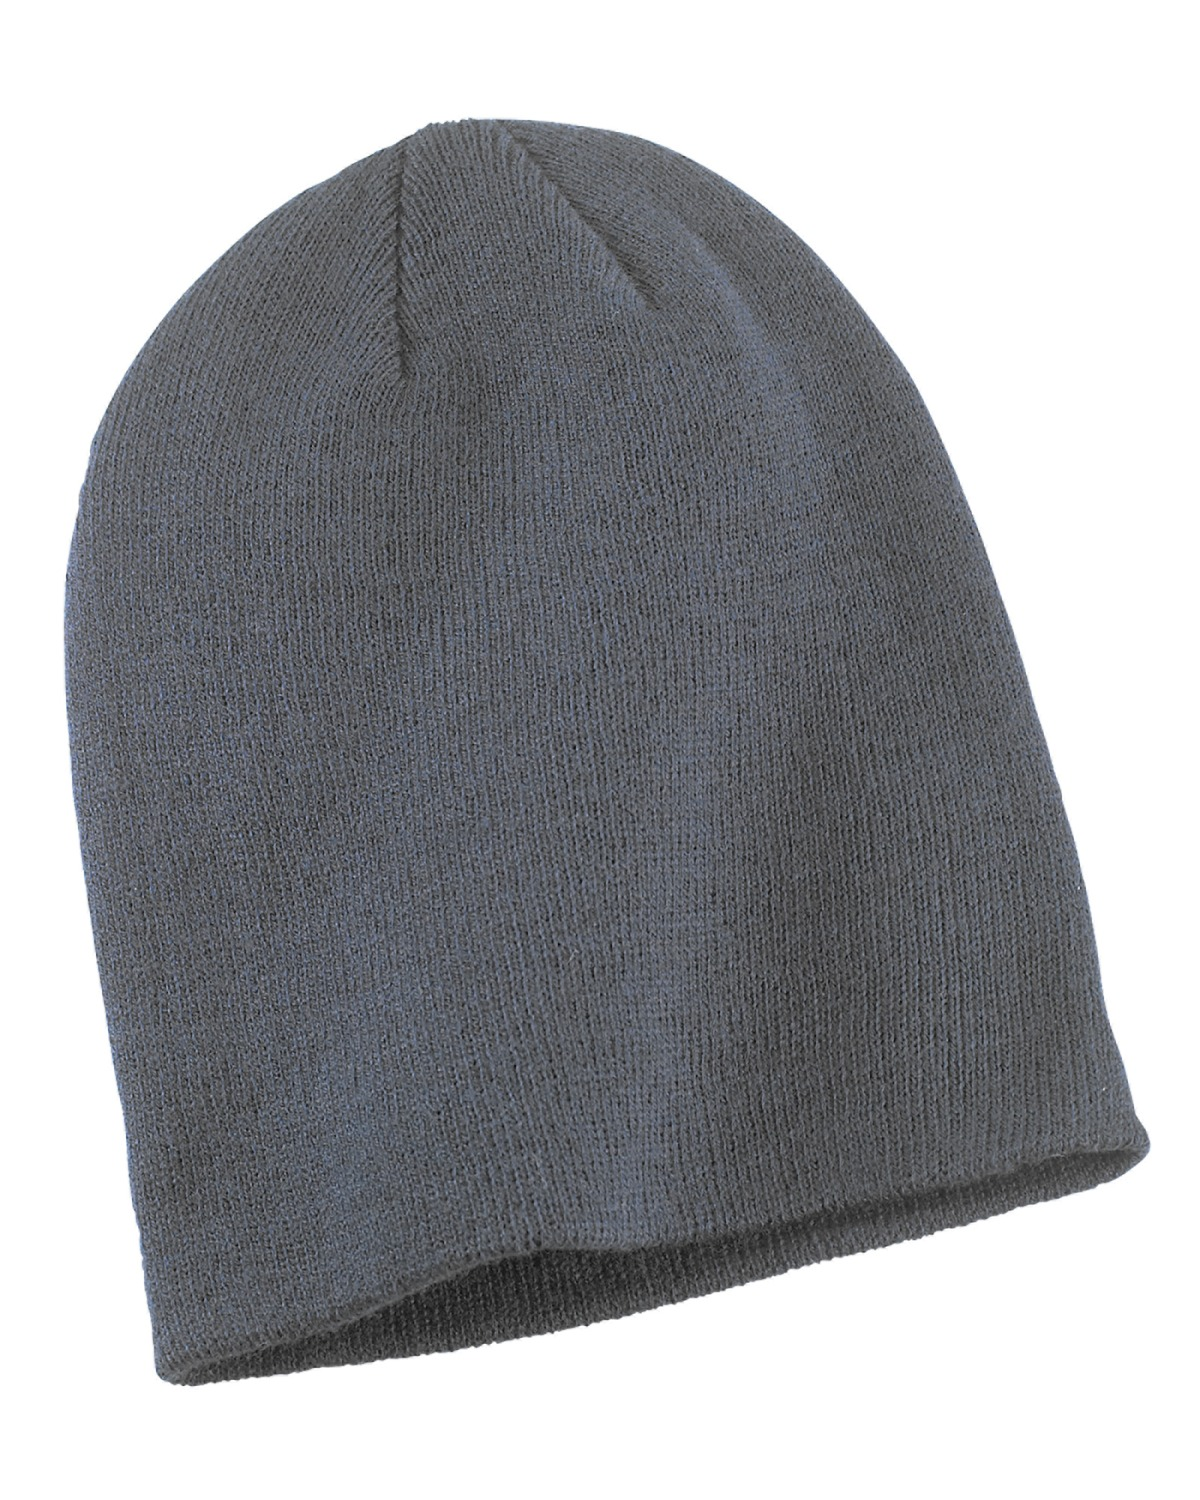 BA519- Big Accessories Slouch Beanie